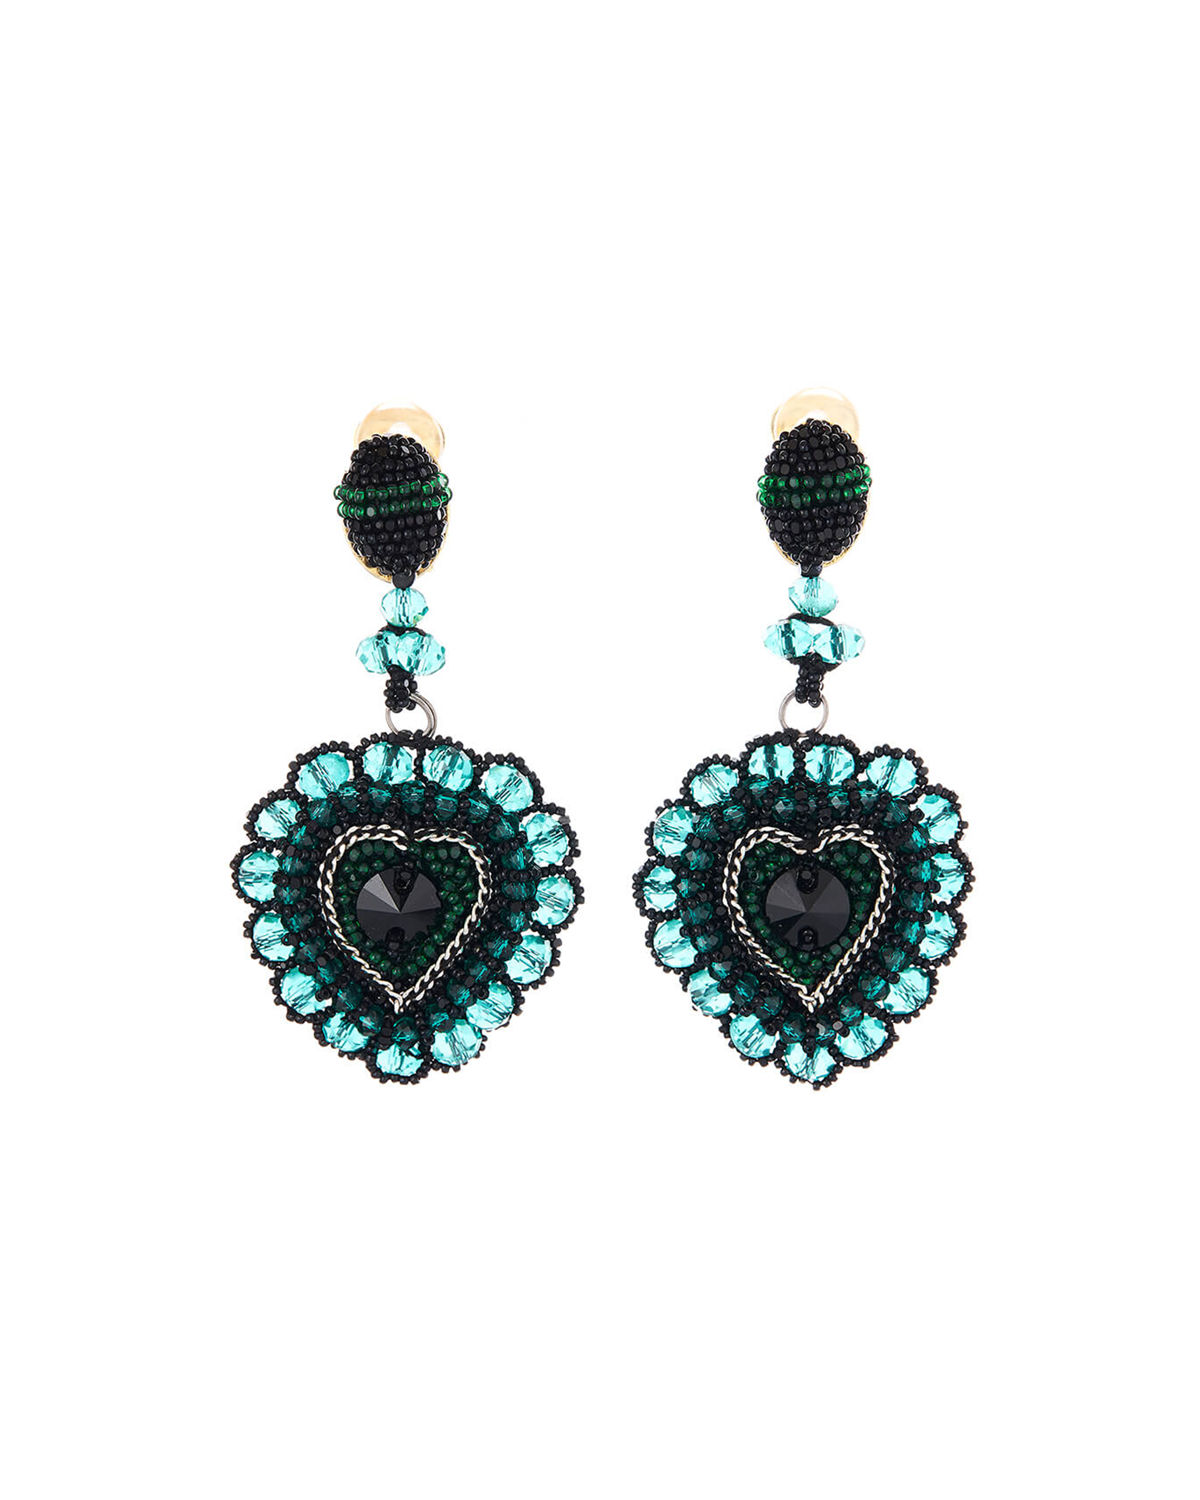 Oscar De La Renta Accessories EMBELLISHED RUNWAY HEART CLIP EARRINGS